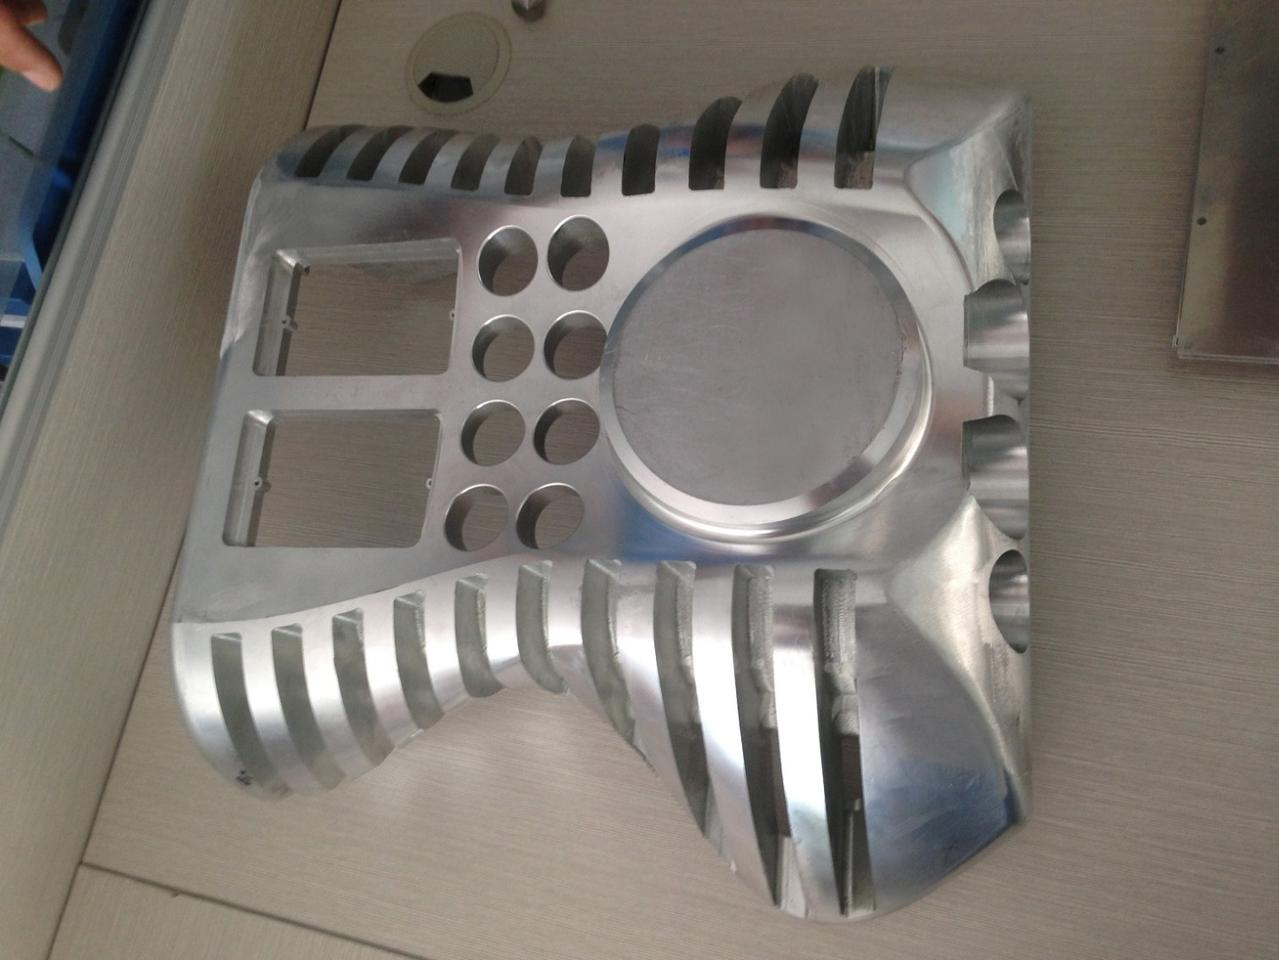 The curvaceous housing is machined from a solid block of aircraft-grade aluminum, copper or titanium